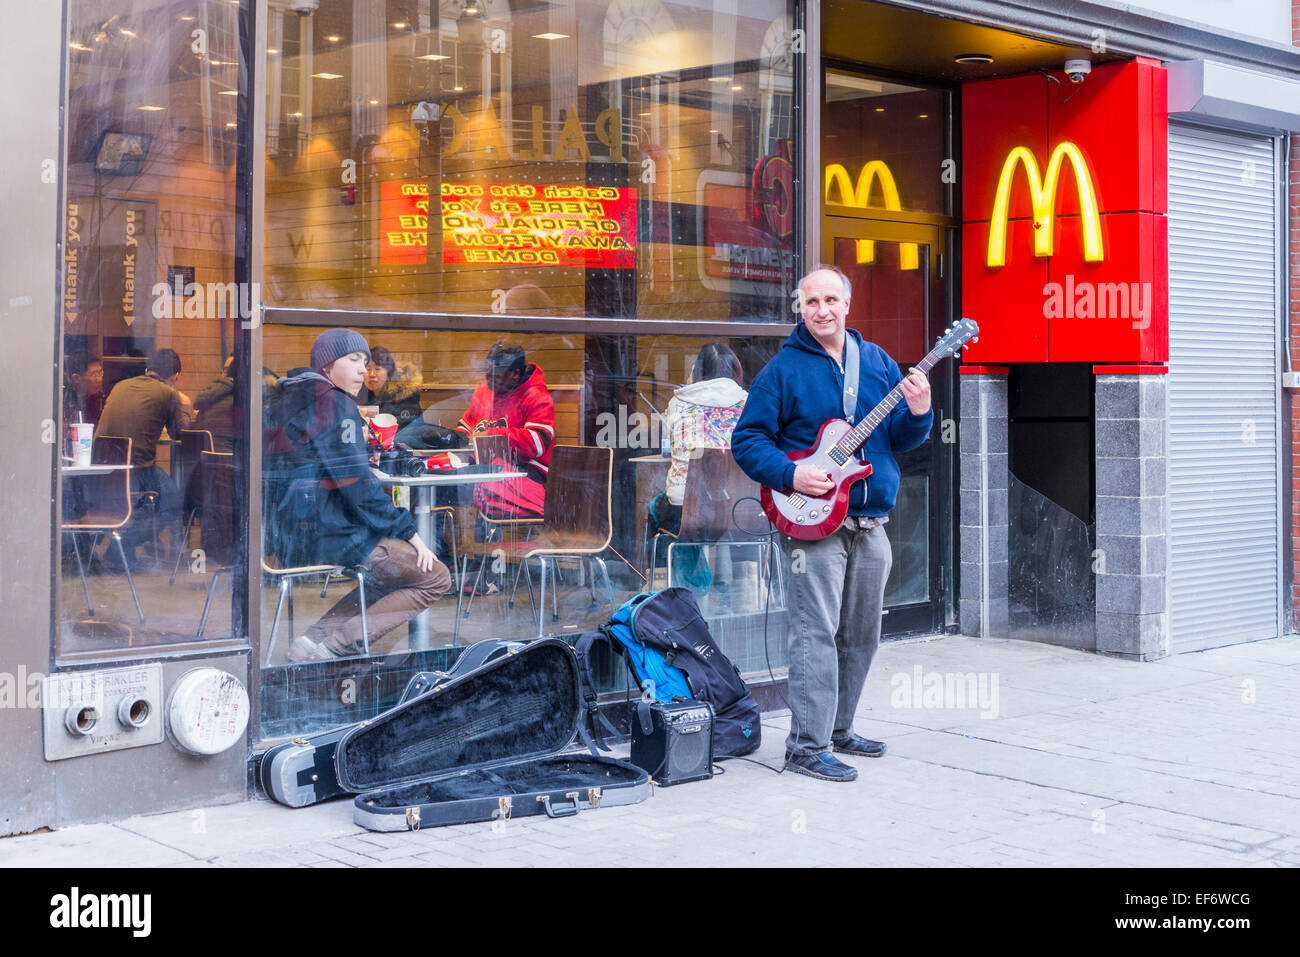 Guitarist busking outside McDonalds on Stephen Avenue, Calgary, Alberta, Canada - Stock Image